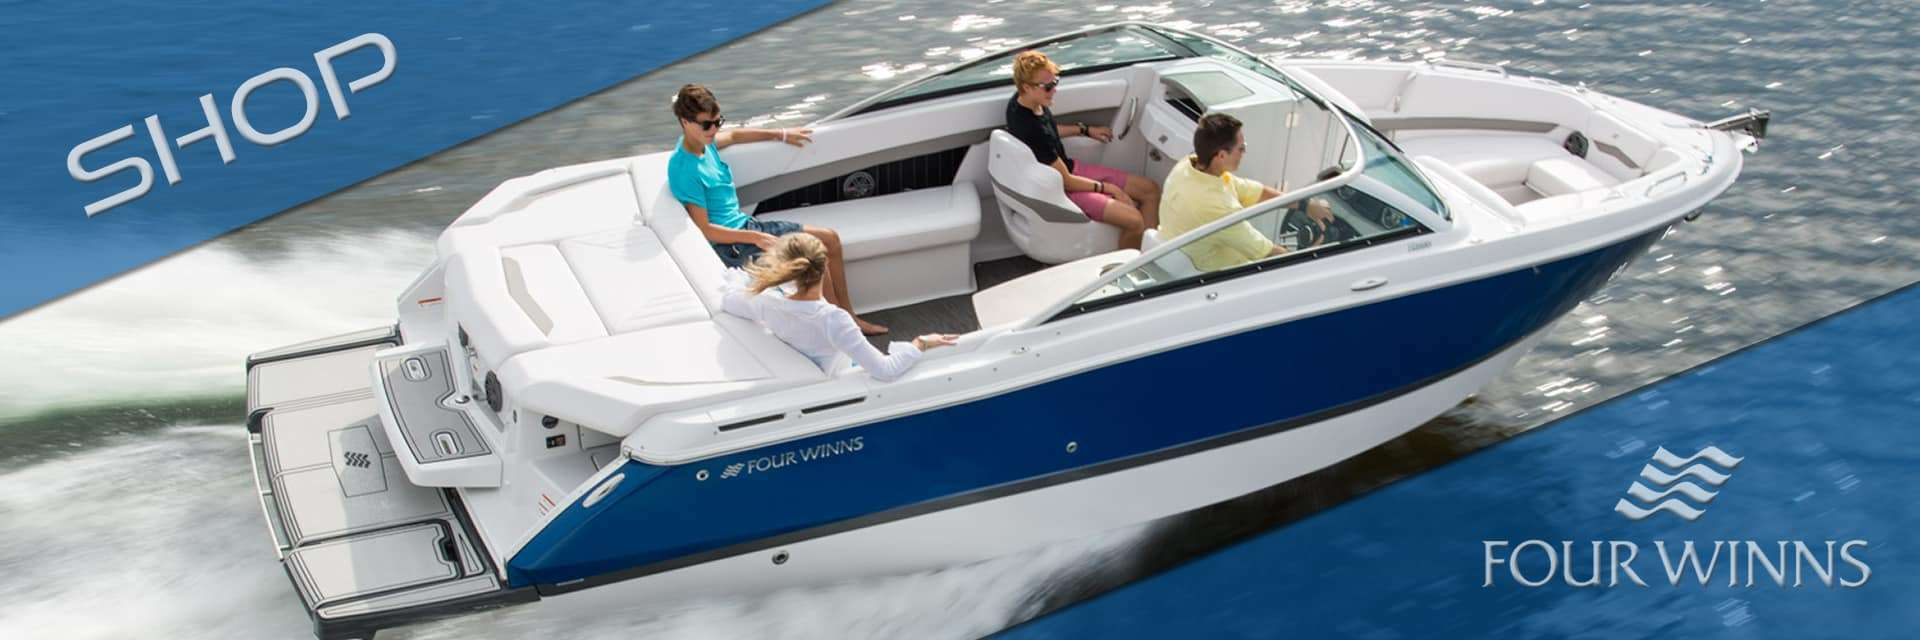 Four Winns is sold at Dick Lane's Marine and Powersports